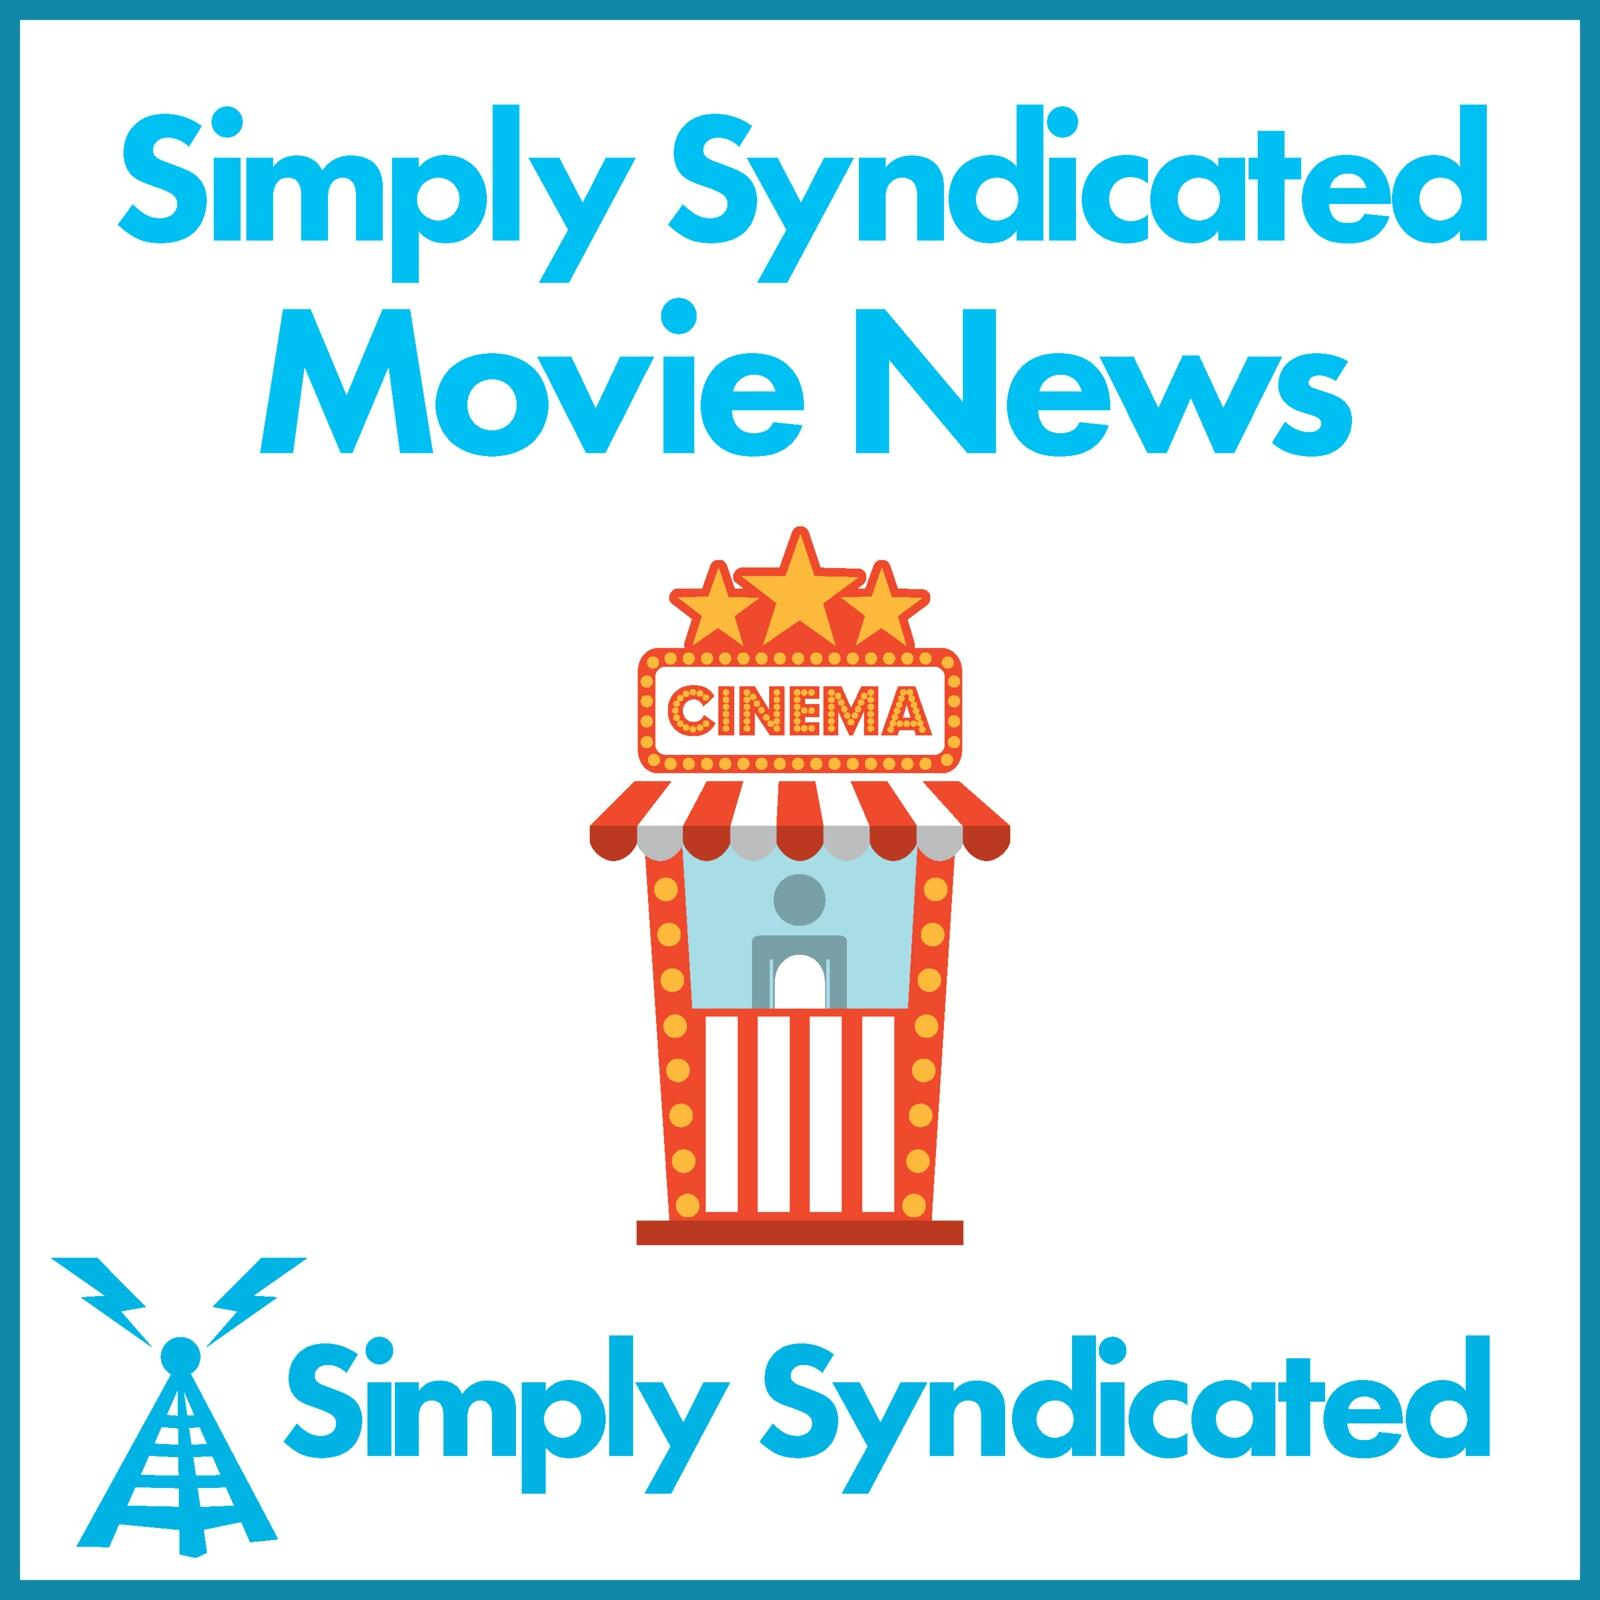 Simply Syndicated Movie News